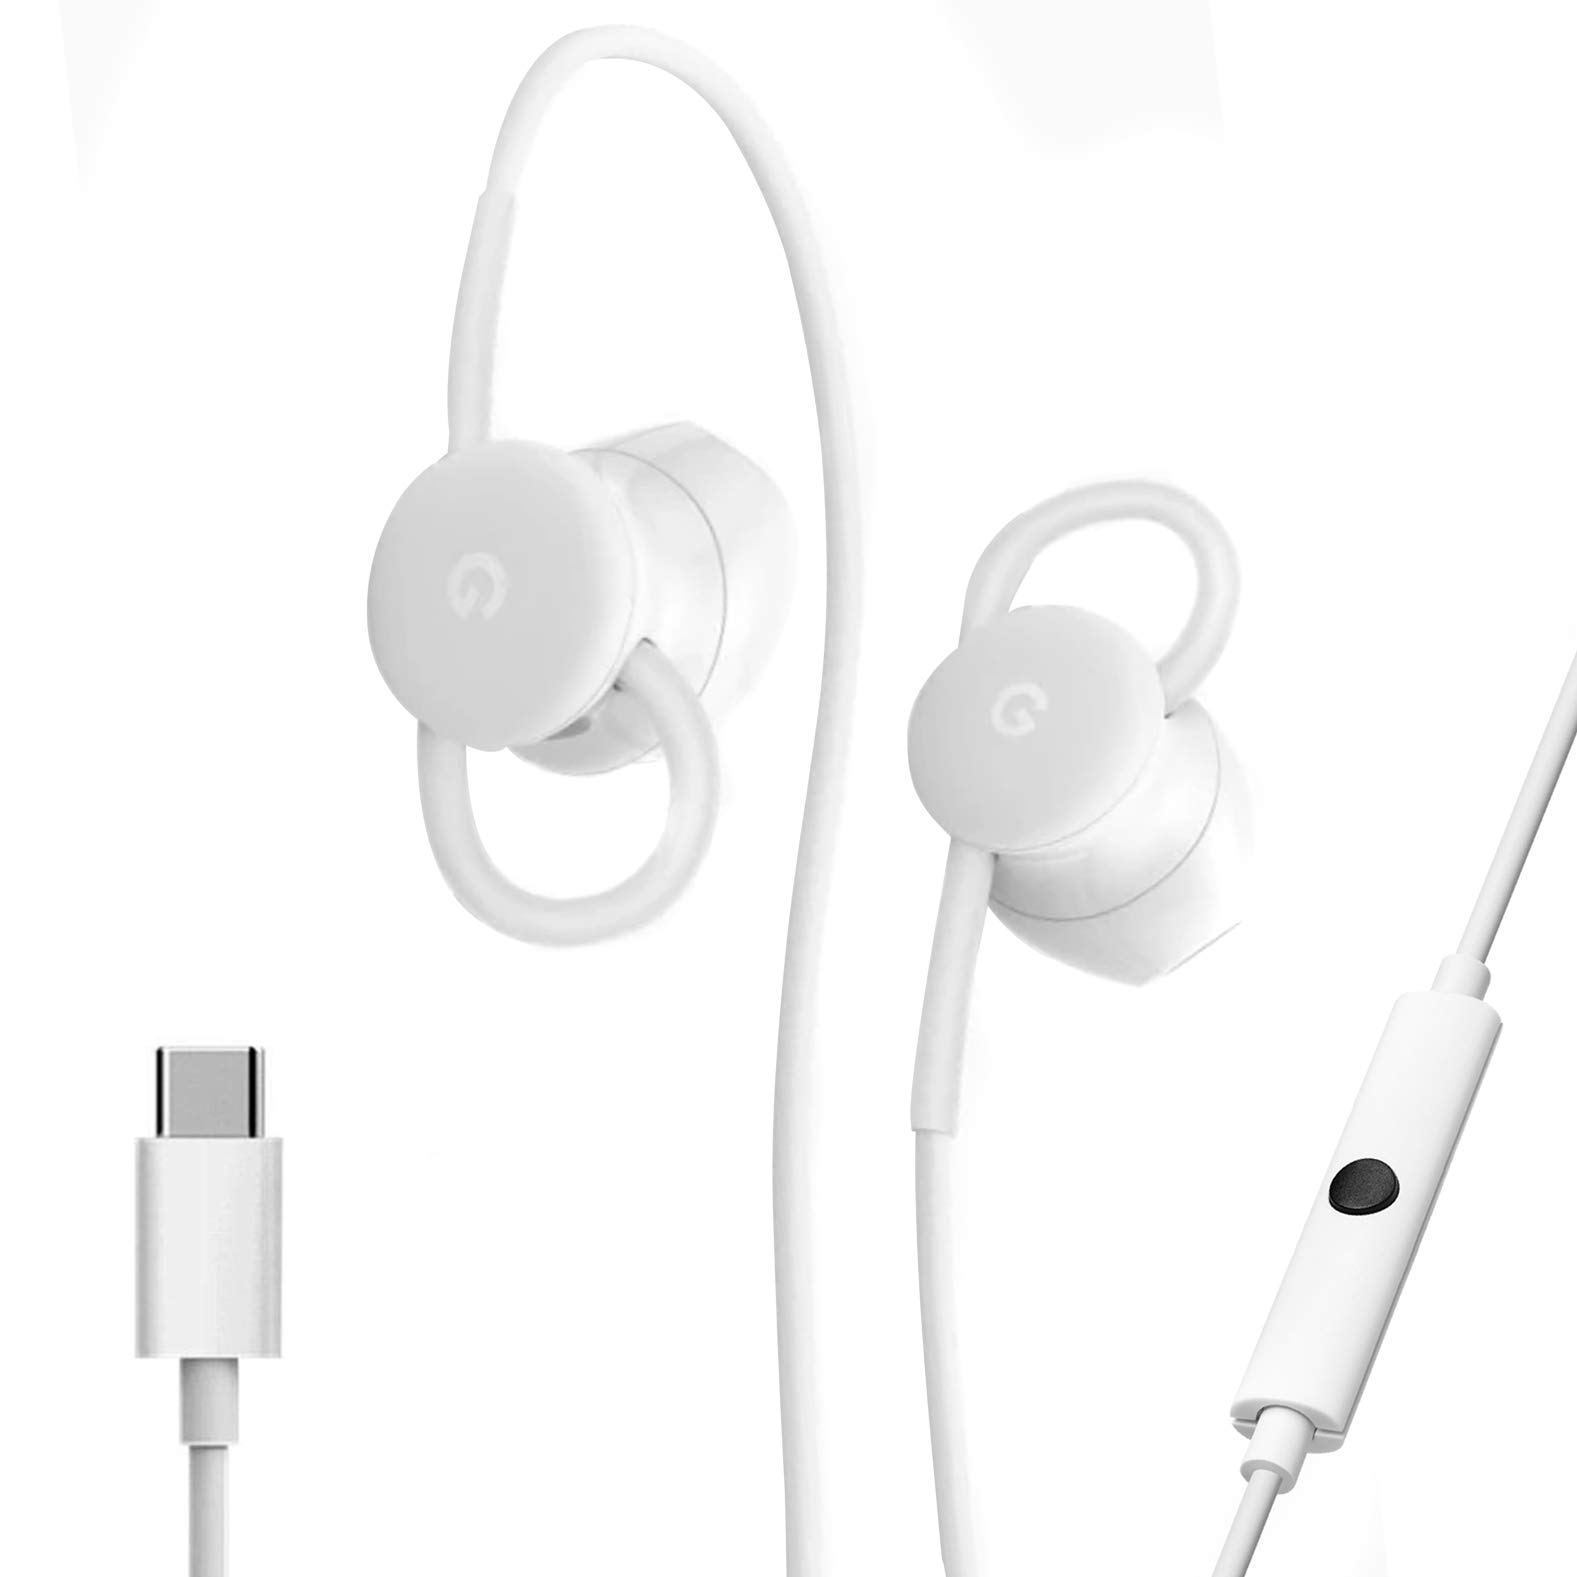 USB-C Earbuds, USB-C to 3.5mm Adapter, USB-C to USB 3.0 Adapter, for Google Pixel Devices - Accessory Combo Kit by Phihong Technology co. (Image #2)